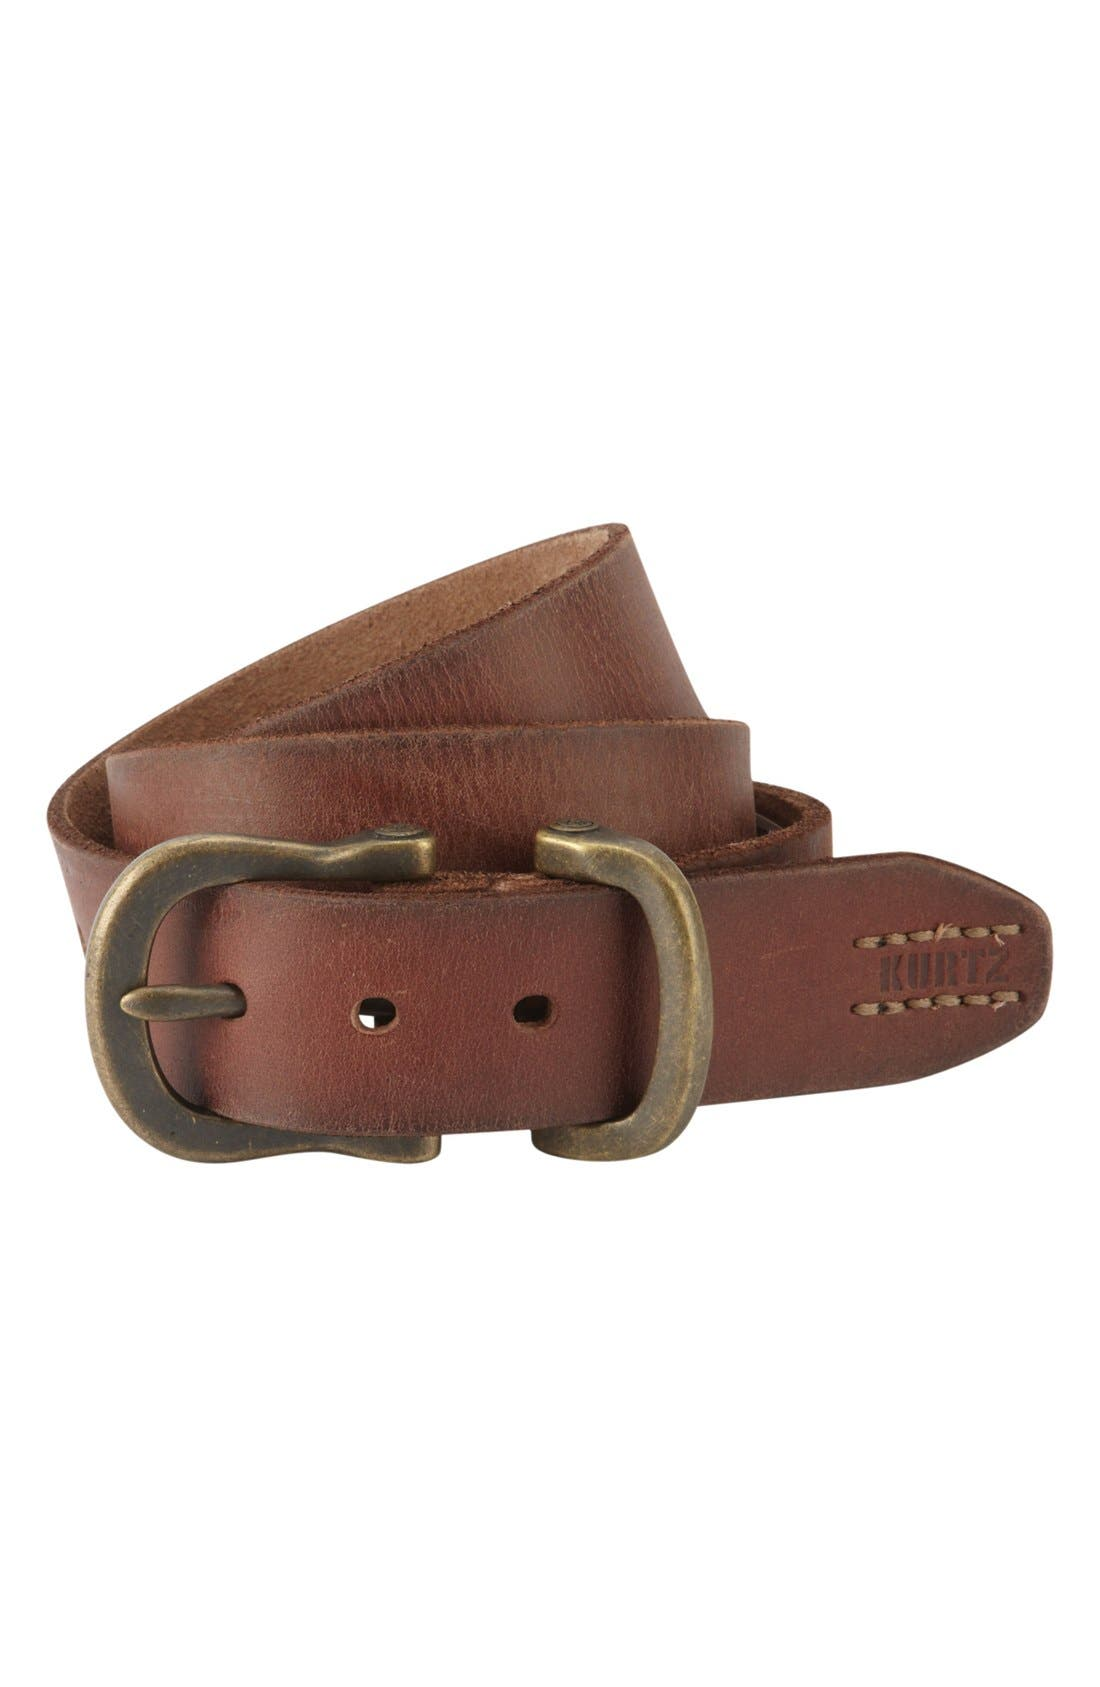 Alternate Image 1 Selected - A. Kurtz 'Dexter' Leather Belt